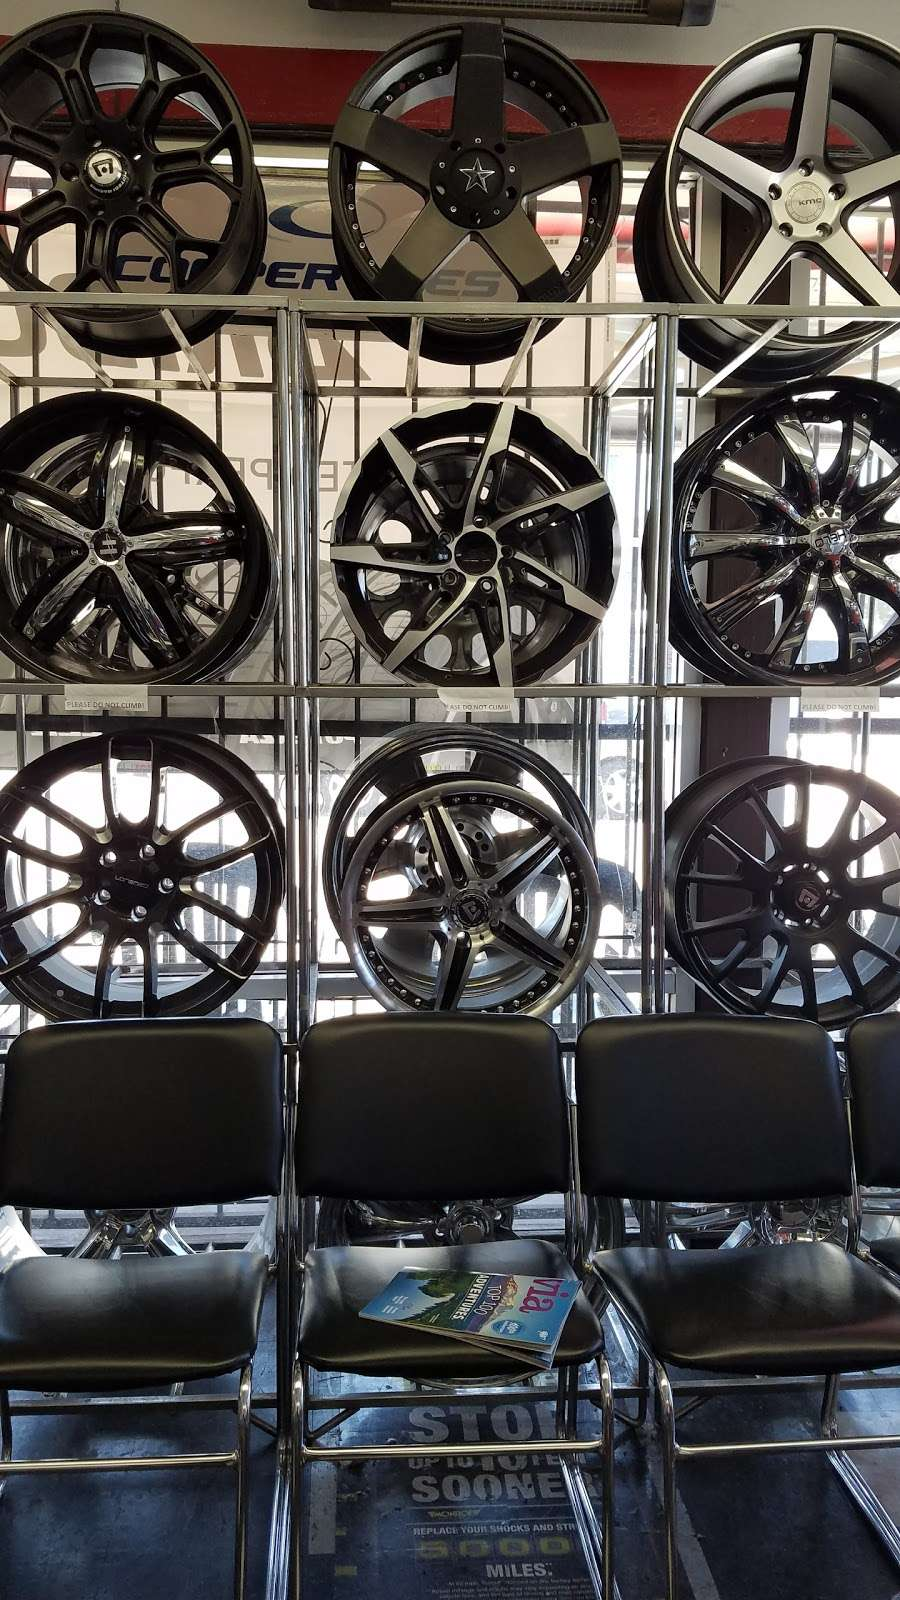 Tire Outlet Store - car repair  | Photo 5 of 6 | Address: 2240 Alum Rock Ave, San Jose, CA 95116, USA | Phone: (408) 258-1639